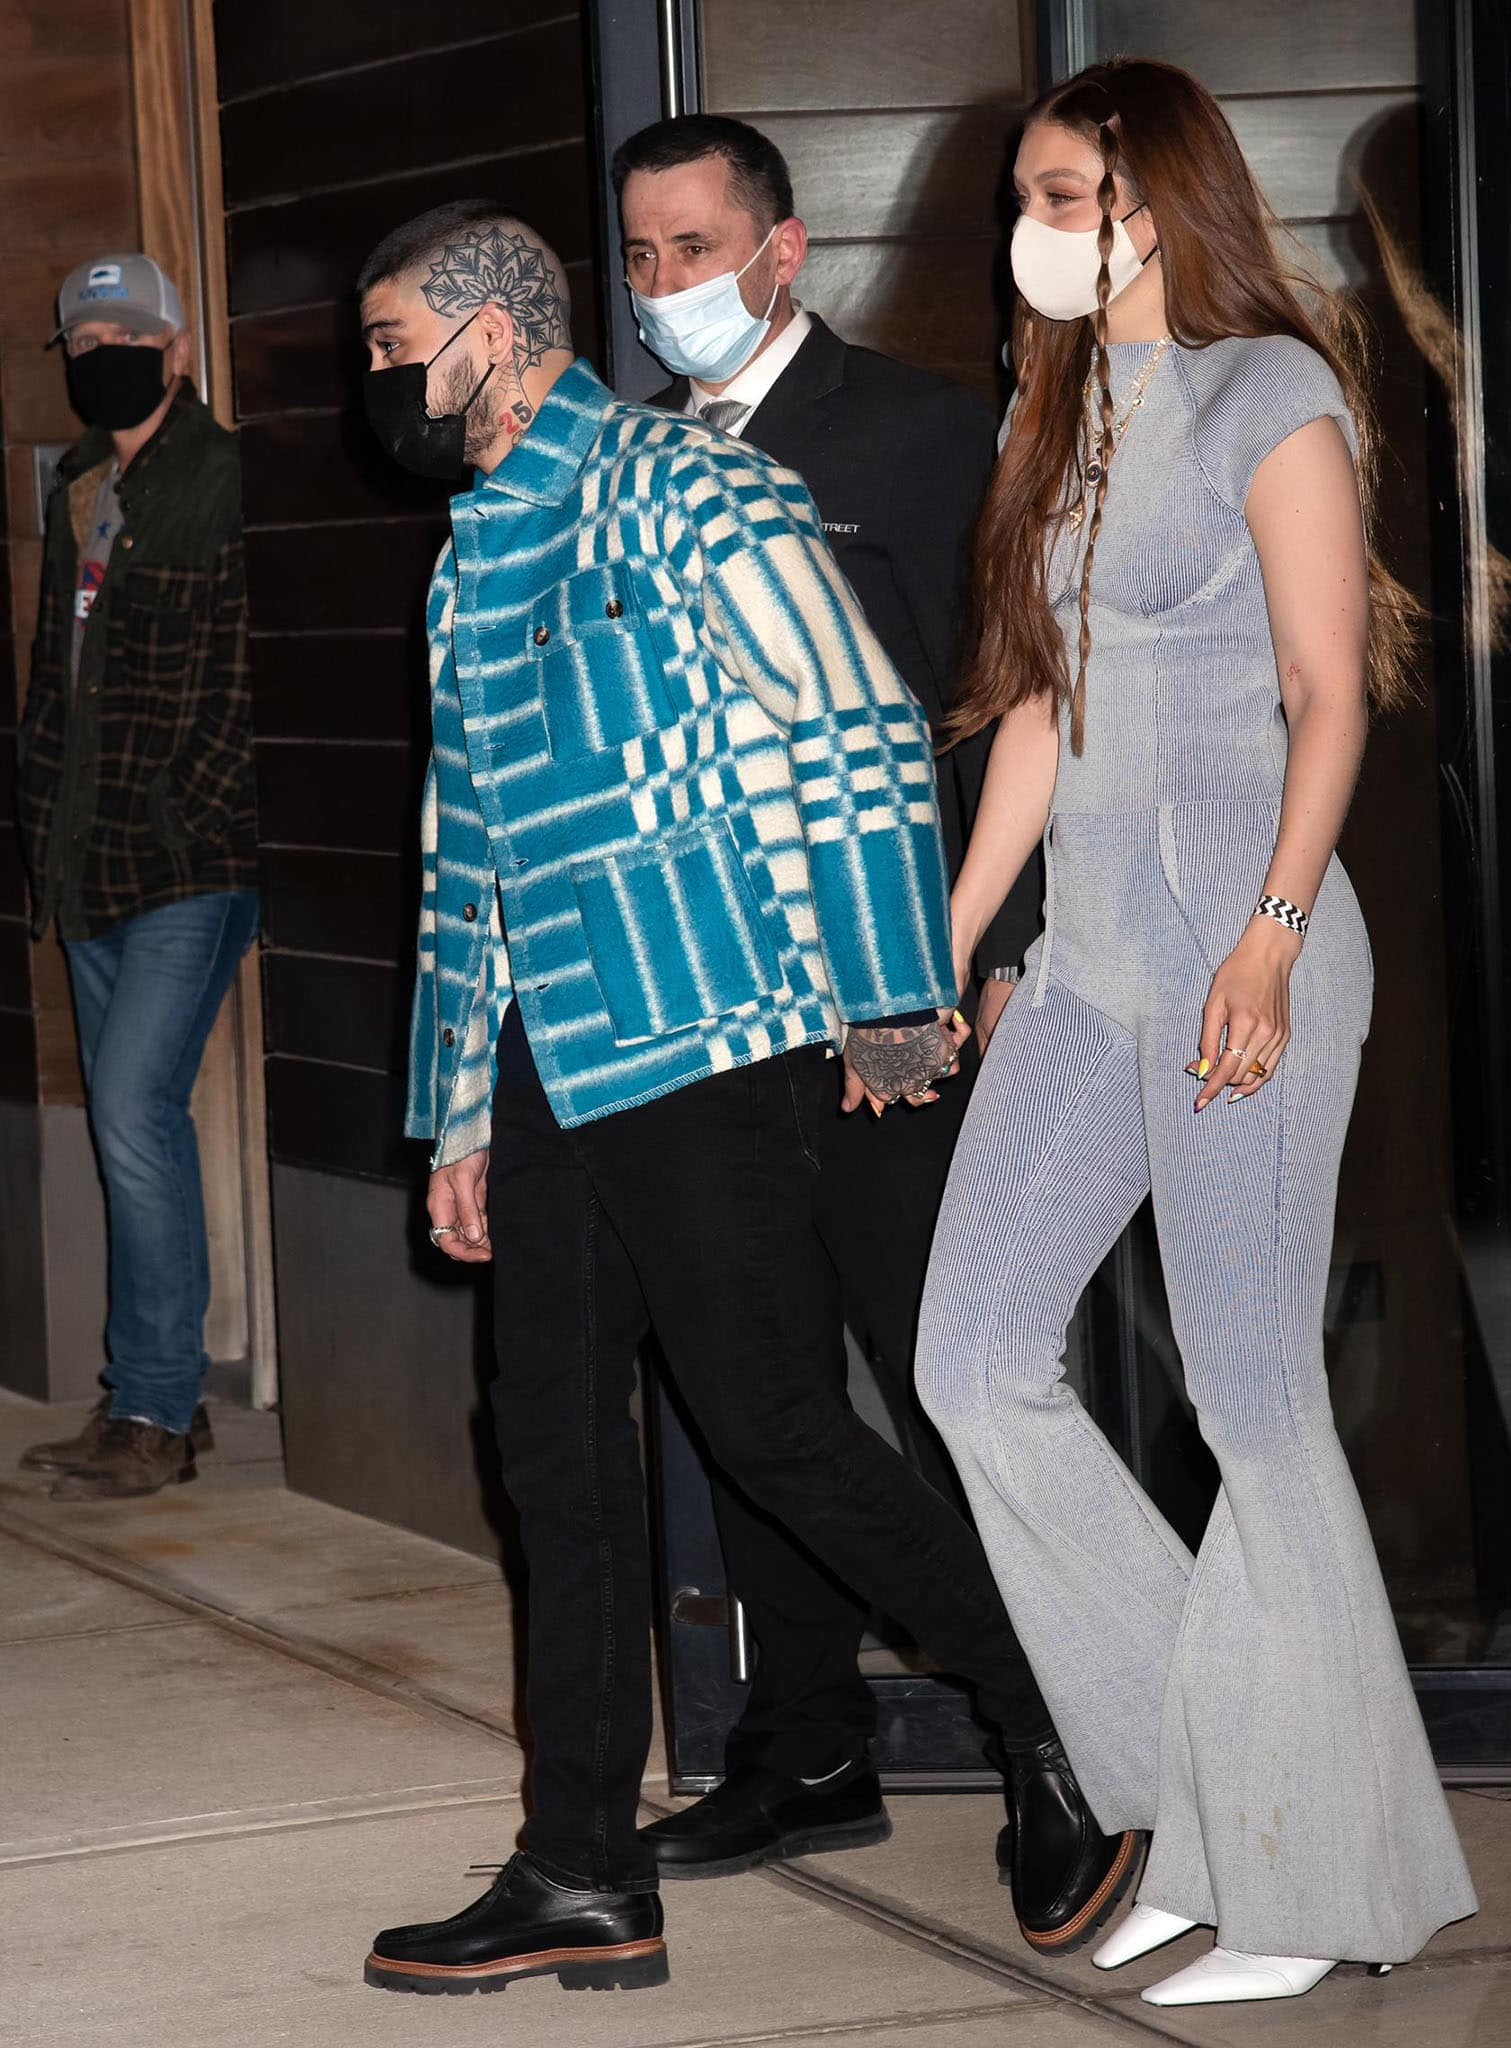 Zayn Malik holds hands with Gigi Hadid in a plaid shirt with black pants and oxford shoes